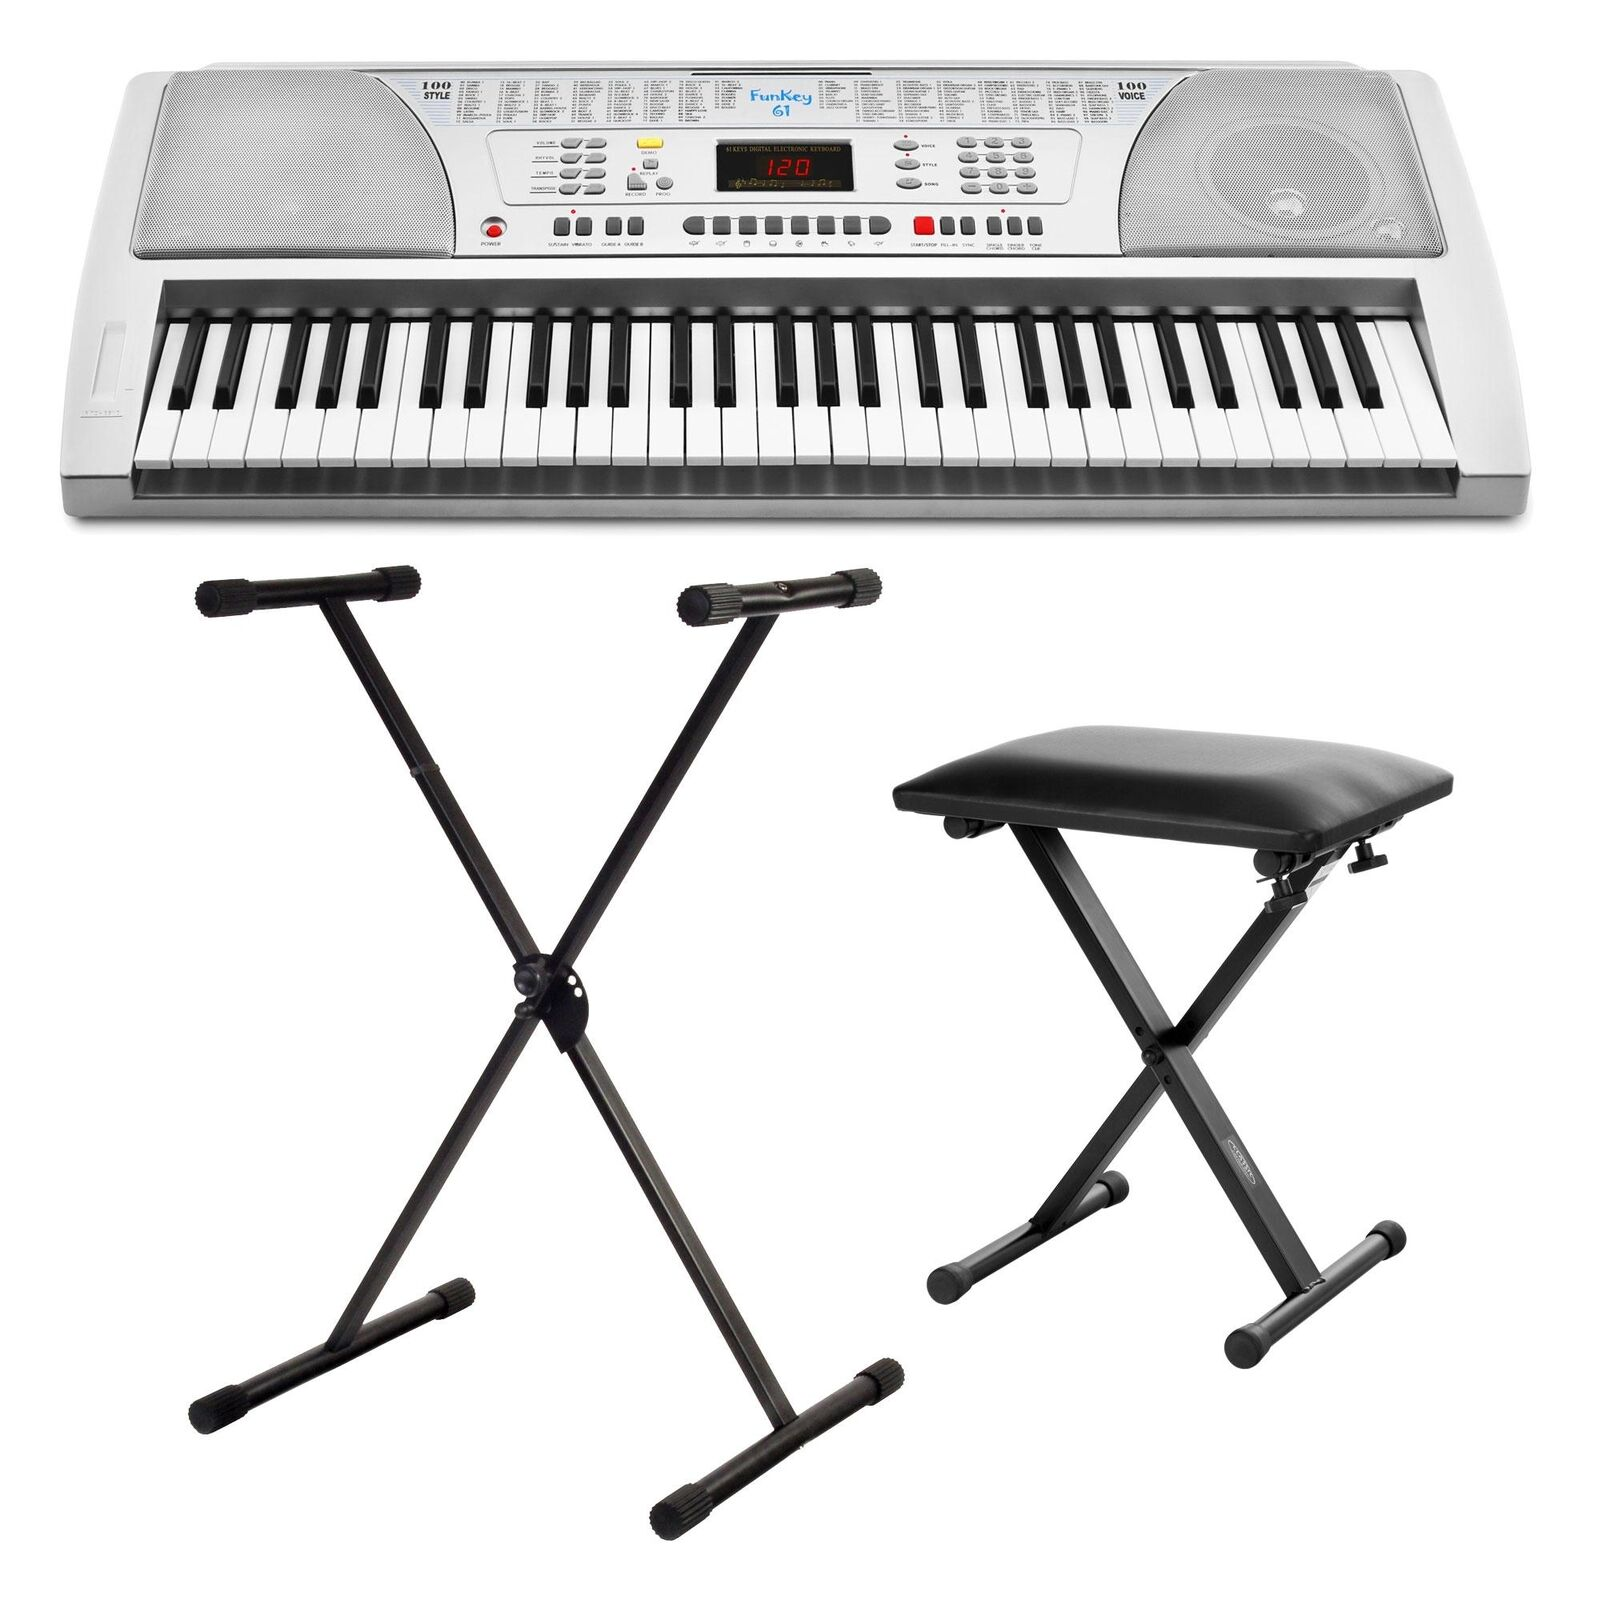 61 KEYS ELECTRONIC KEYBOARD DIGITAL PIANO INCL. MUSIC STAND AND PIANO BENCH SEAT